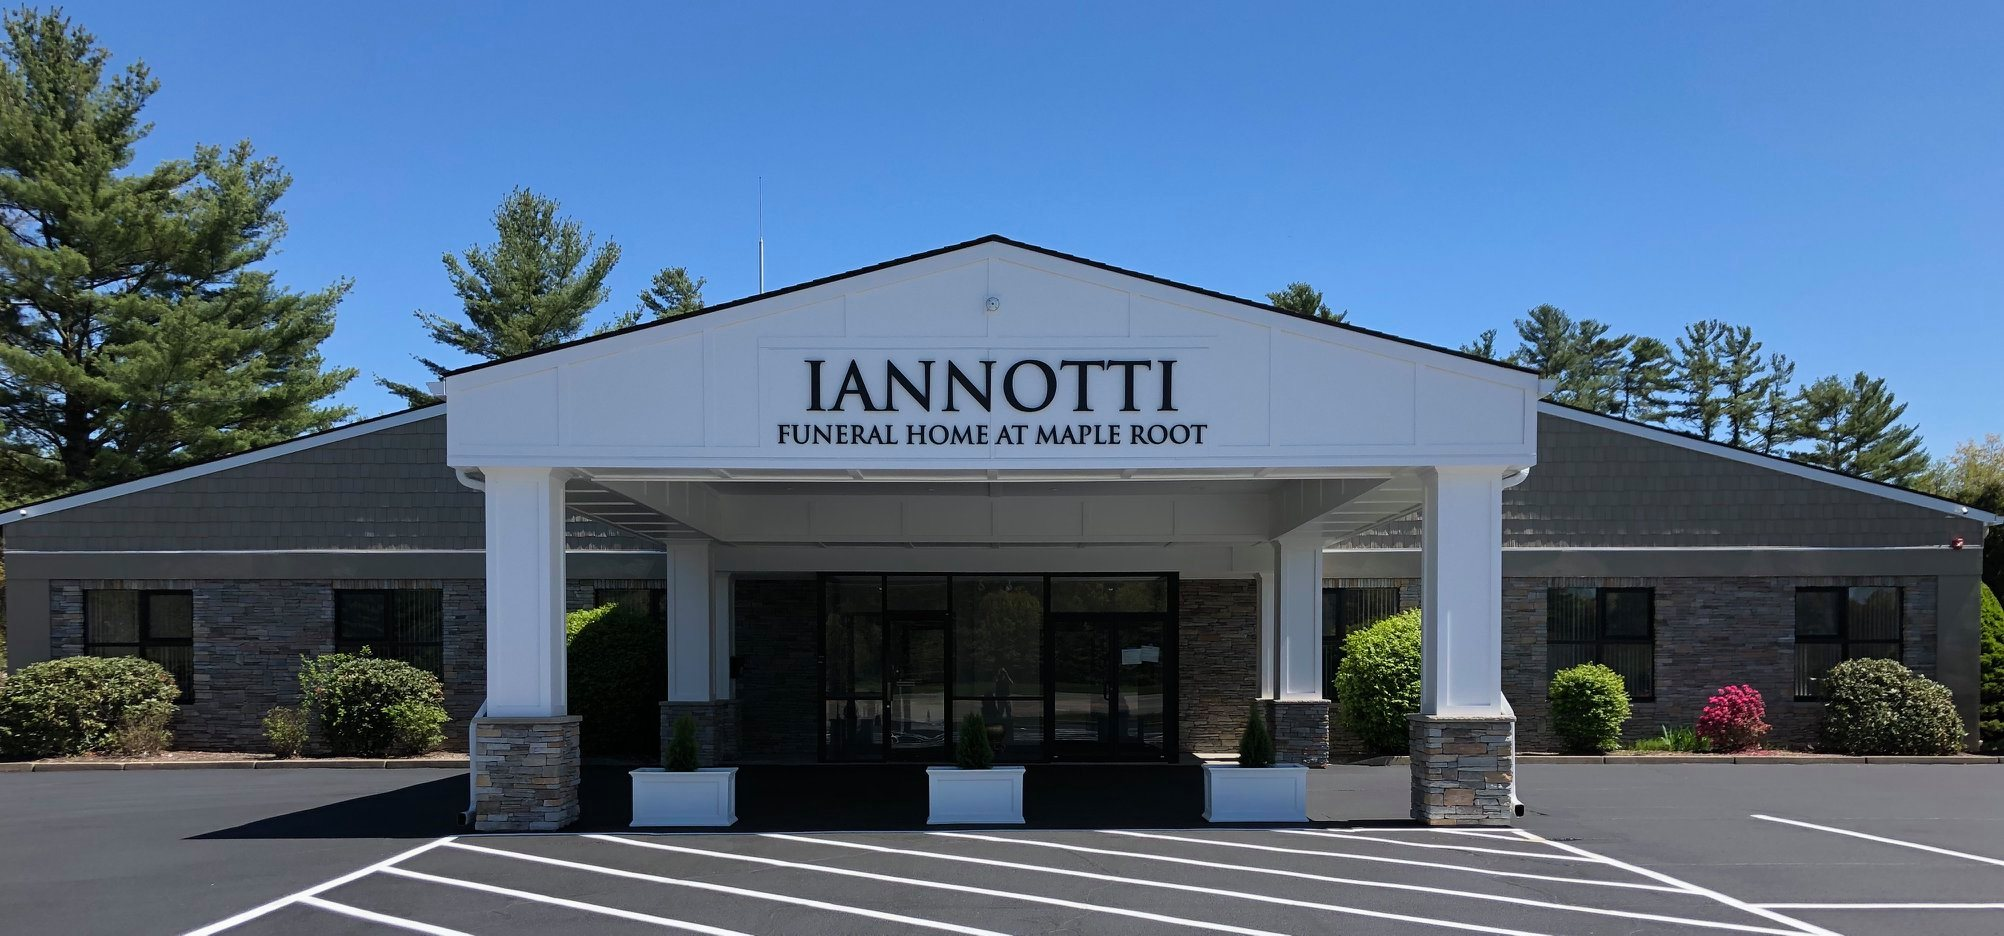 Rhode Island's Top Rated Local® Funeral Homes and Services Award Winner: Iannotti Funeral Home